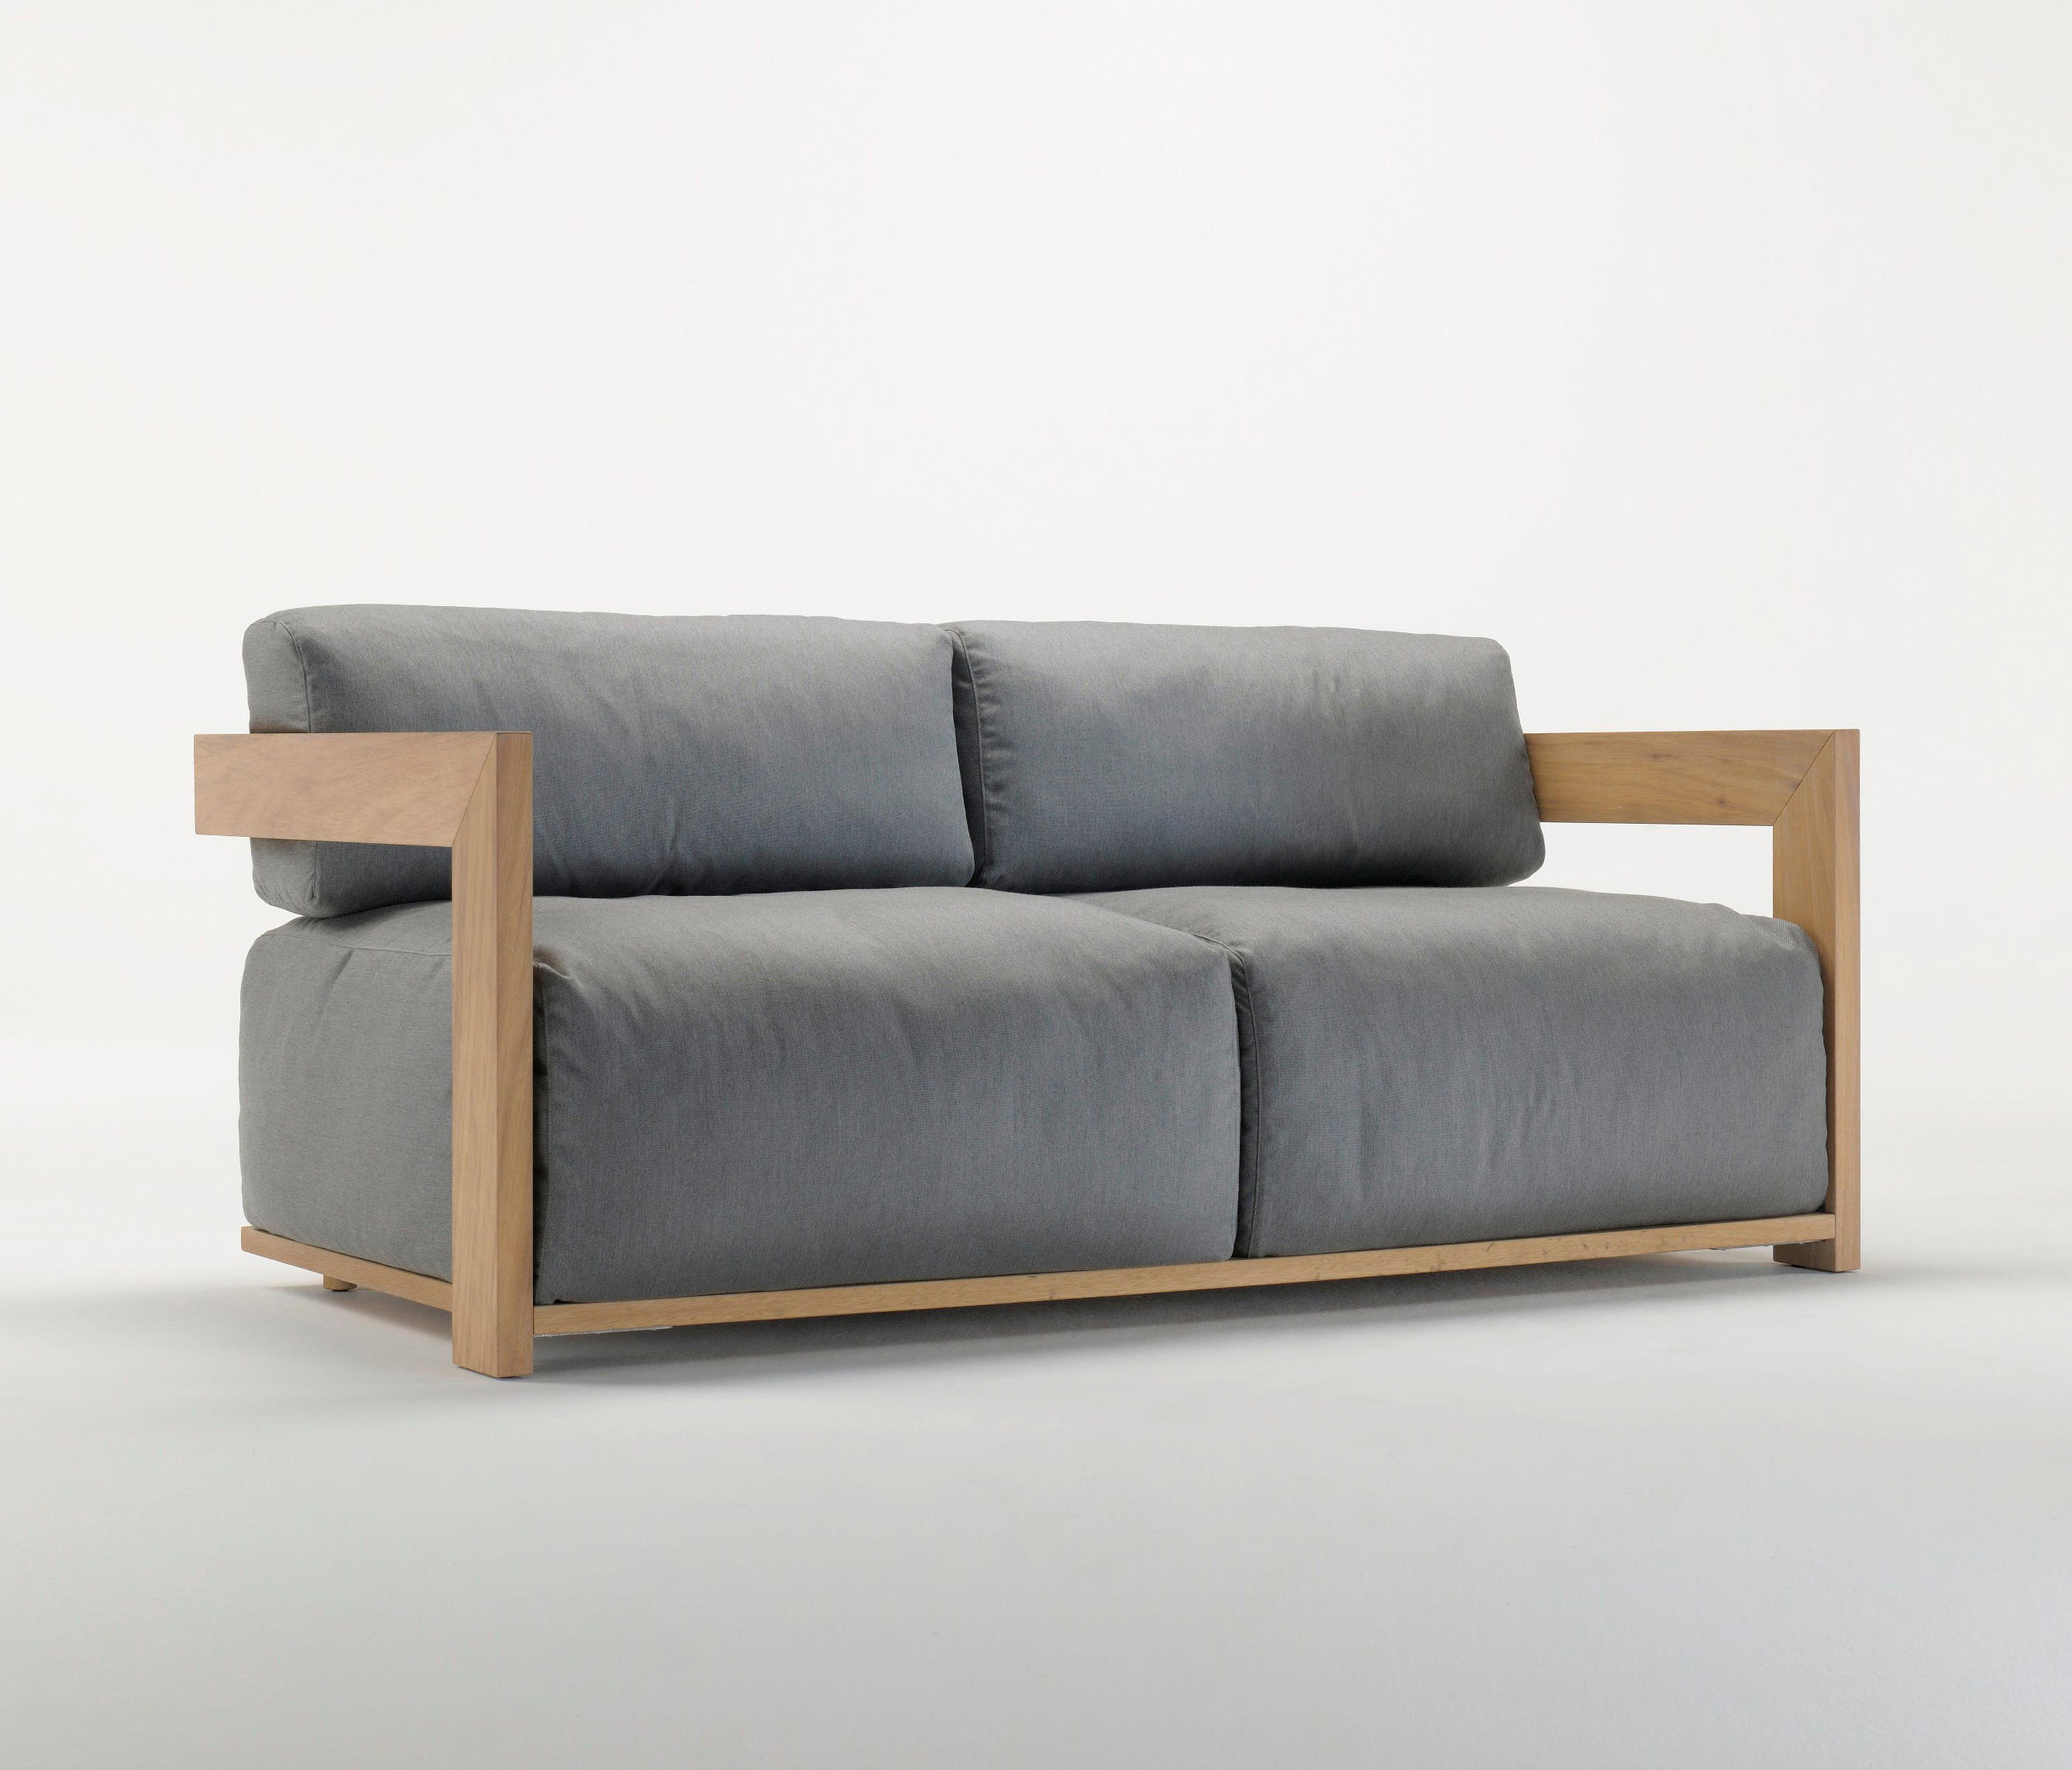 claud sofa garden sofas from meridiani architonic. Black Bedroom Furniture Sets. Home Design Ideas